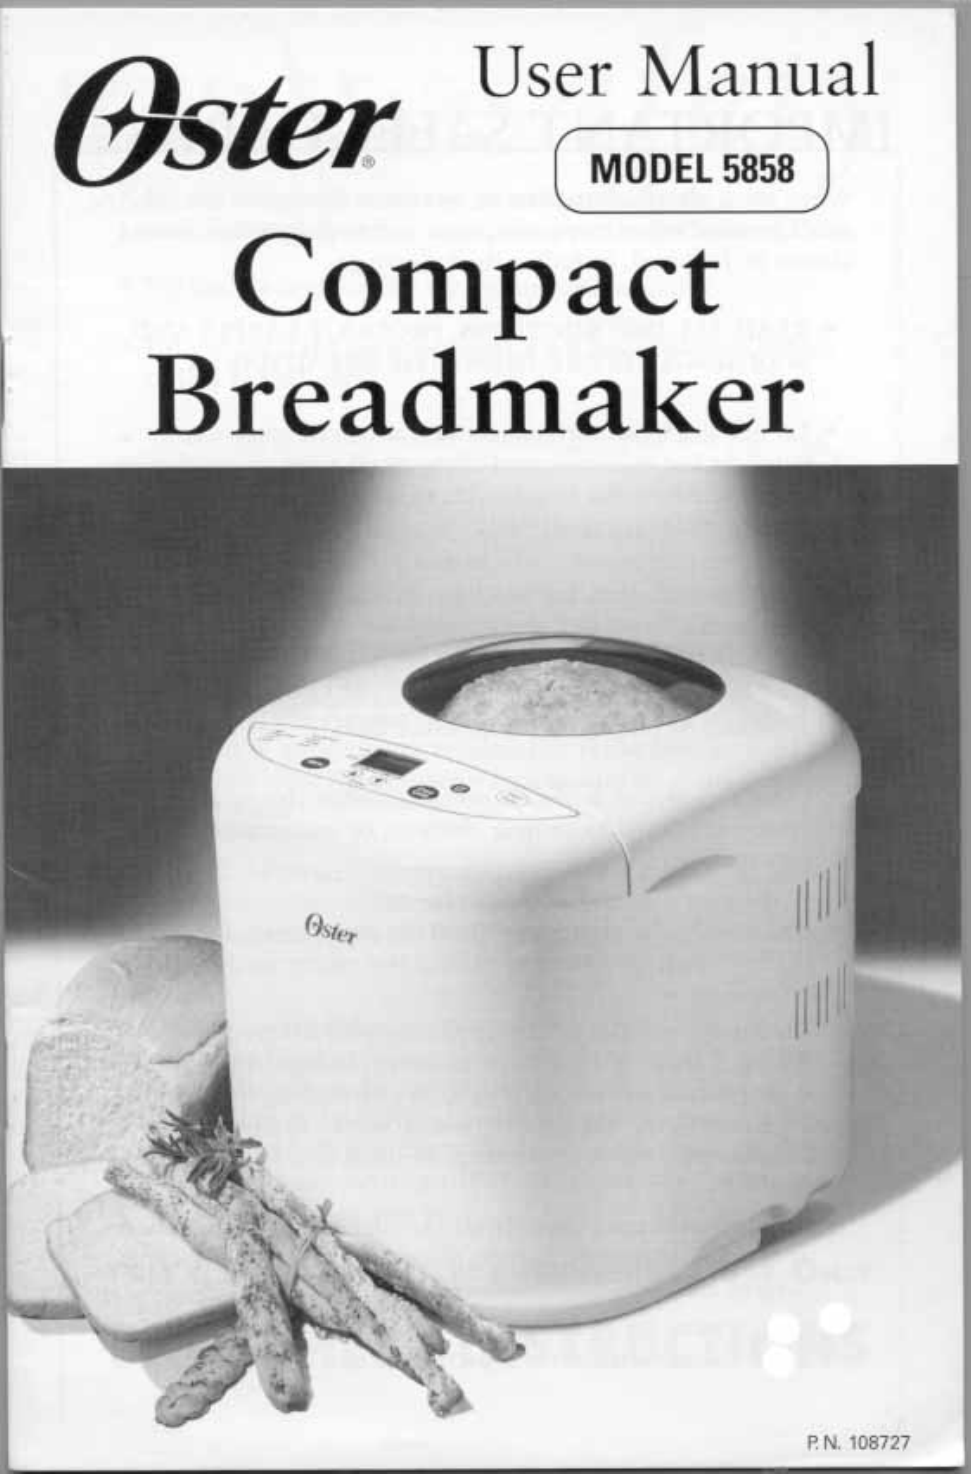 oster 5858 user s manual free pdf download 24 pages rh manualagent com oster breadmaker 5838 user manual Oster Food Processor Manual